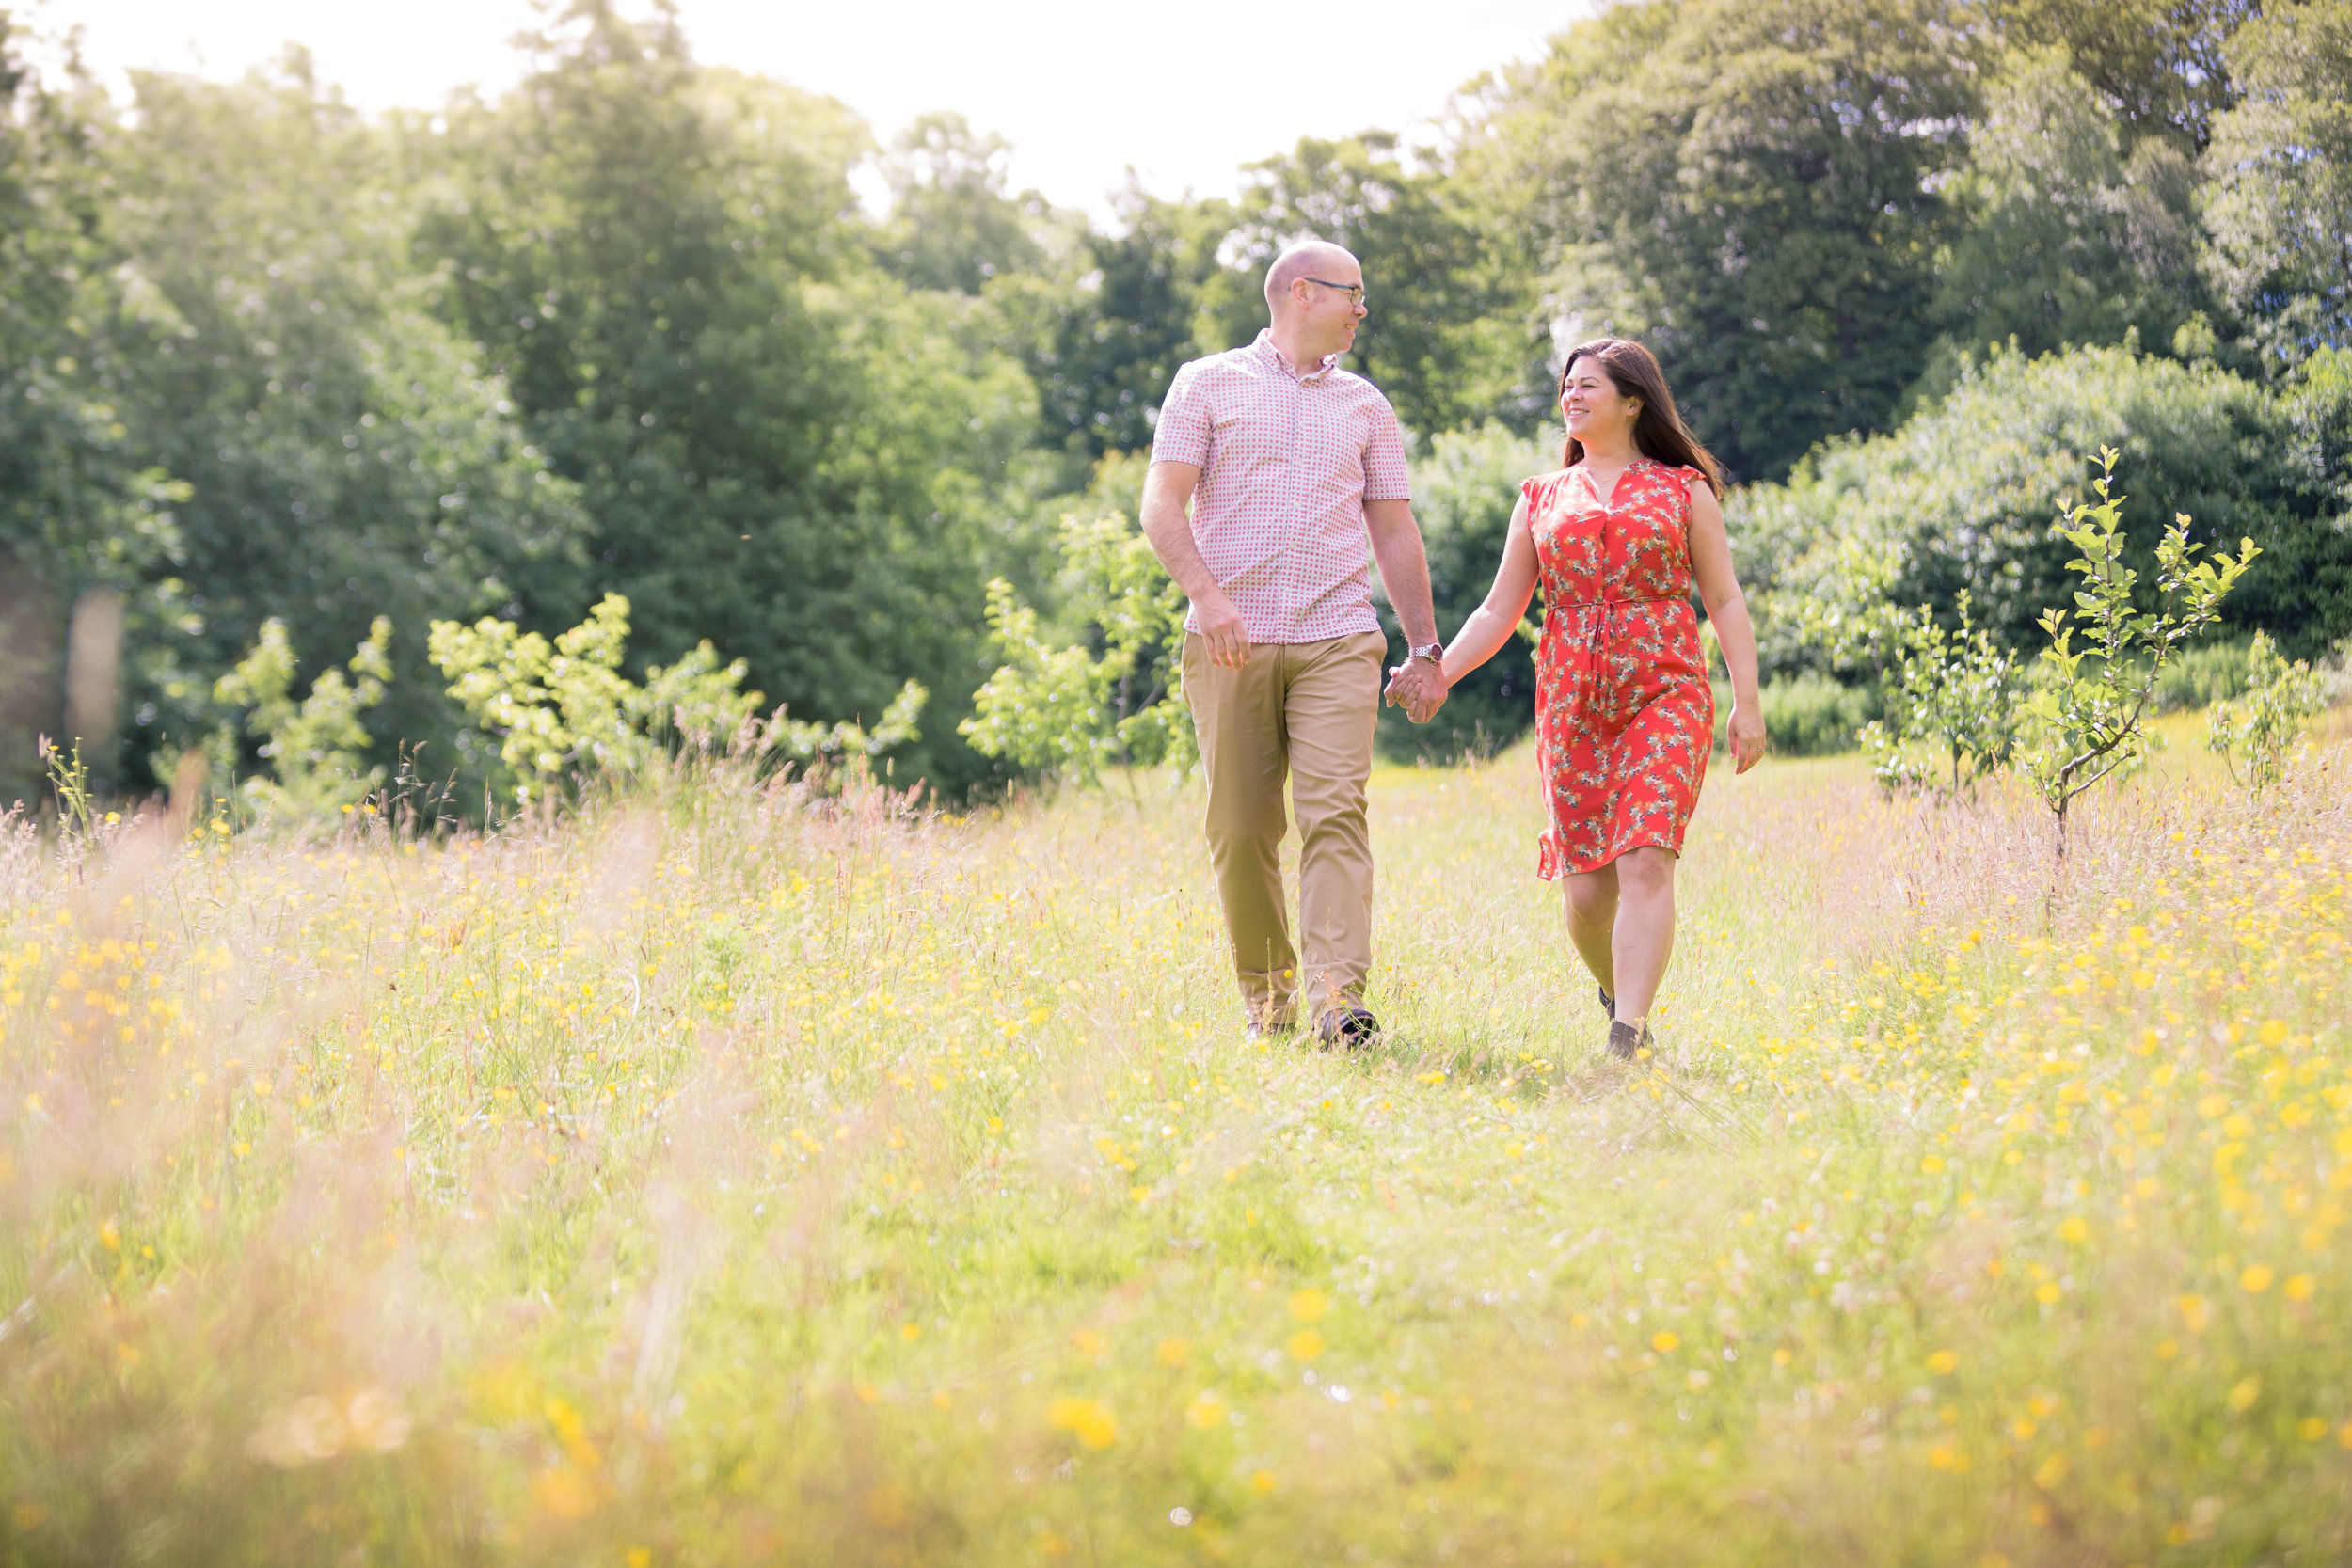 Michelle-and-Mark-engagement-35.jpg